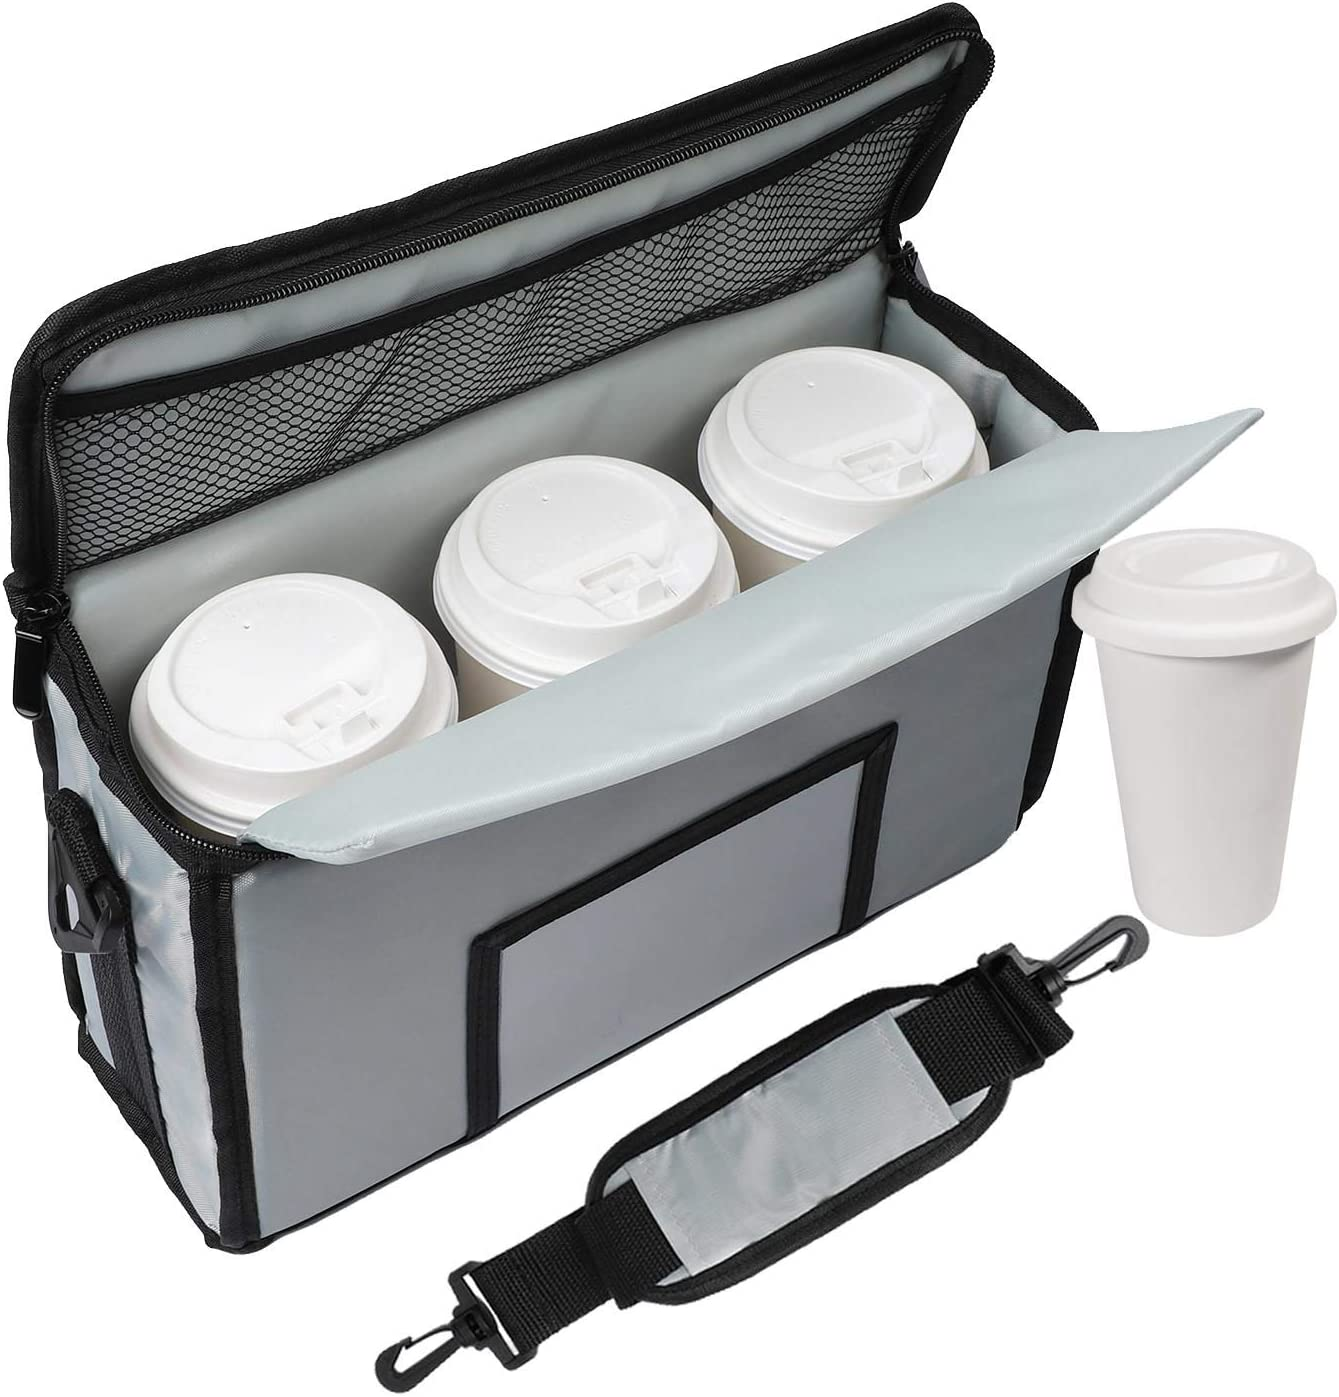 cherrboll Insulated Drink Carrier - Portable Coffee Cup Holder with Shoulder Strap & Handle - Reusable Drink Caddy Bag Holds 3 Cups - Perfect for Food Delivery, Picnic